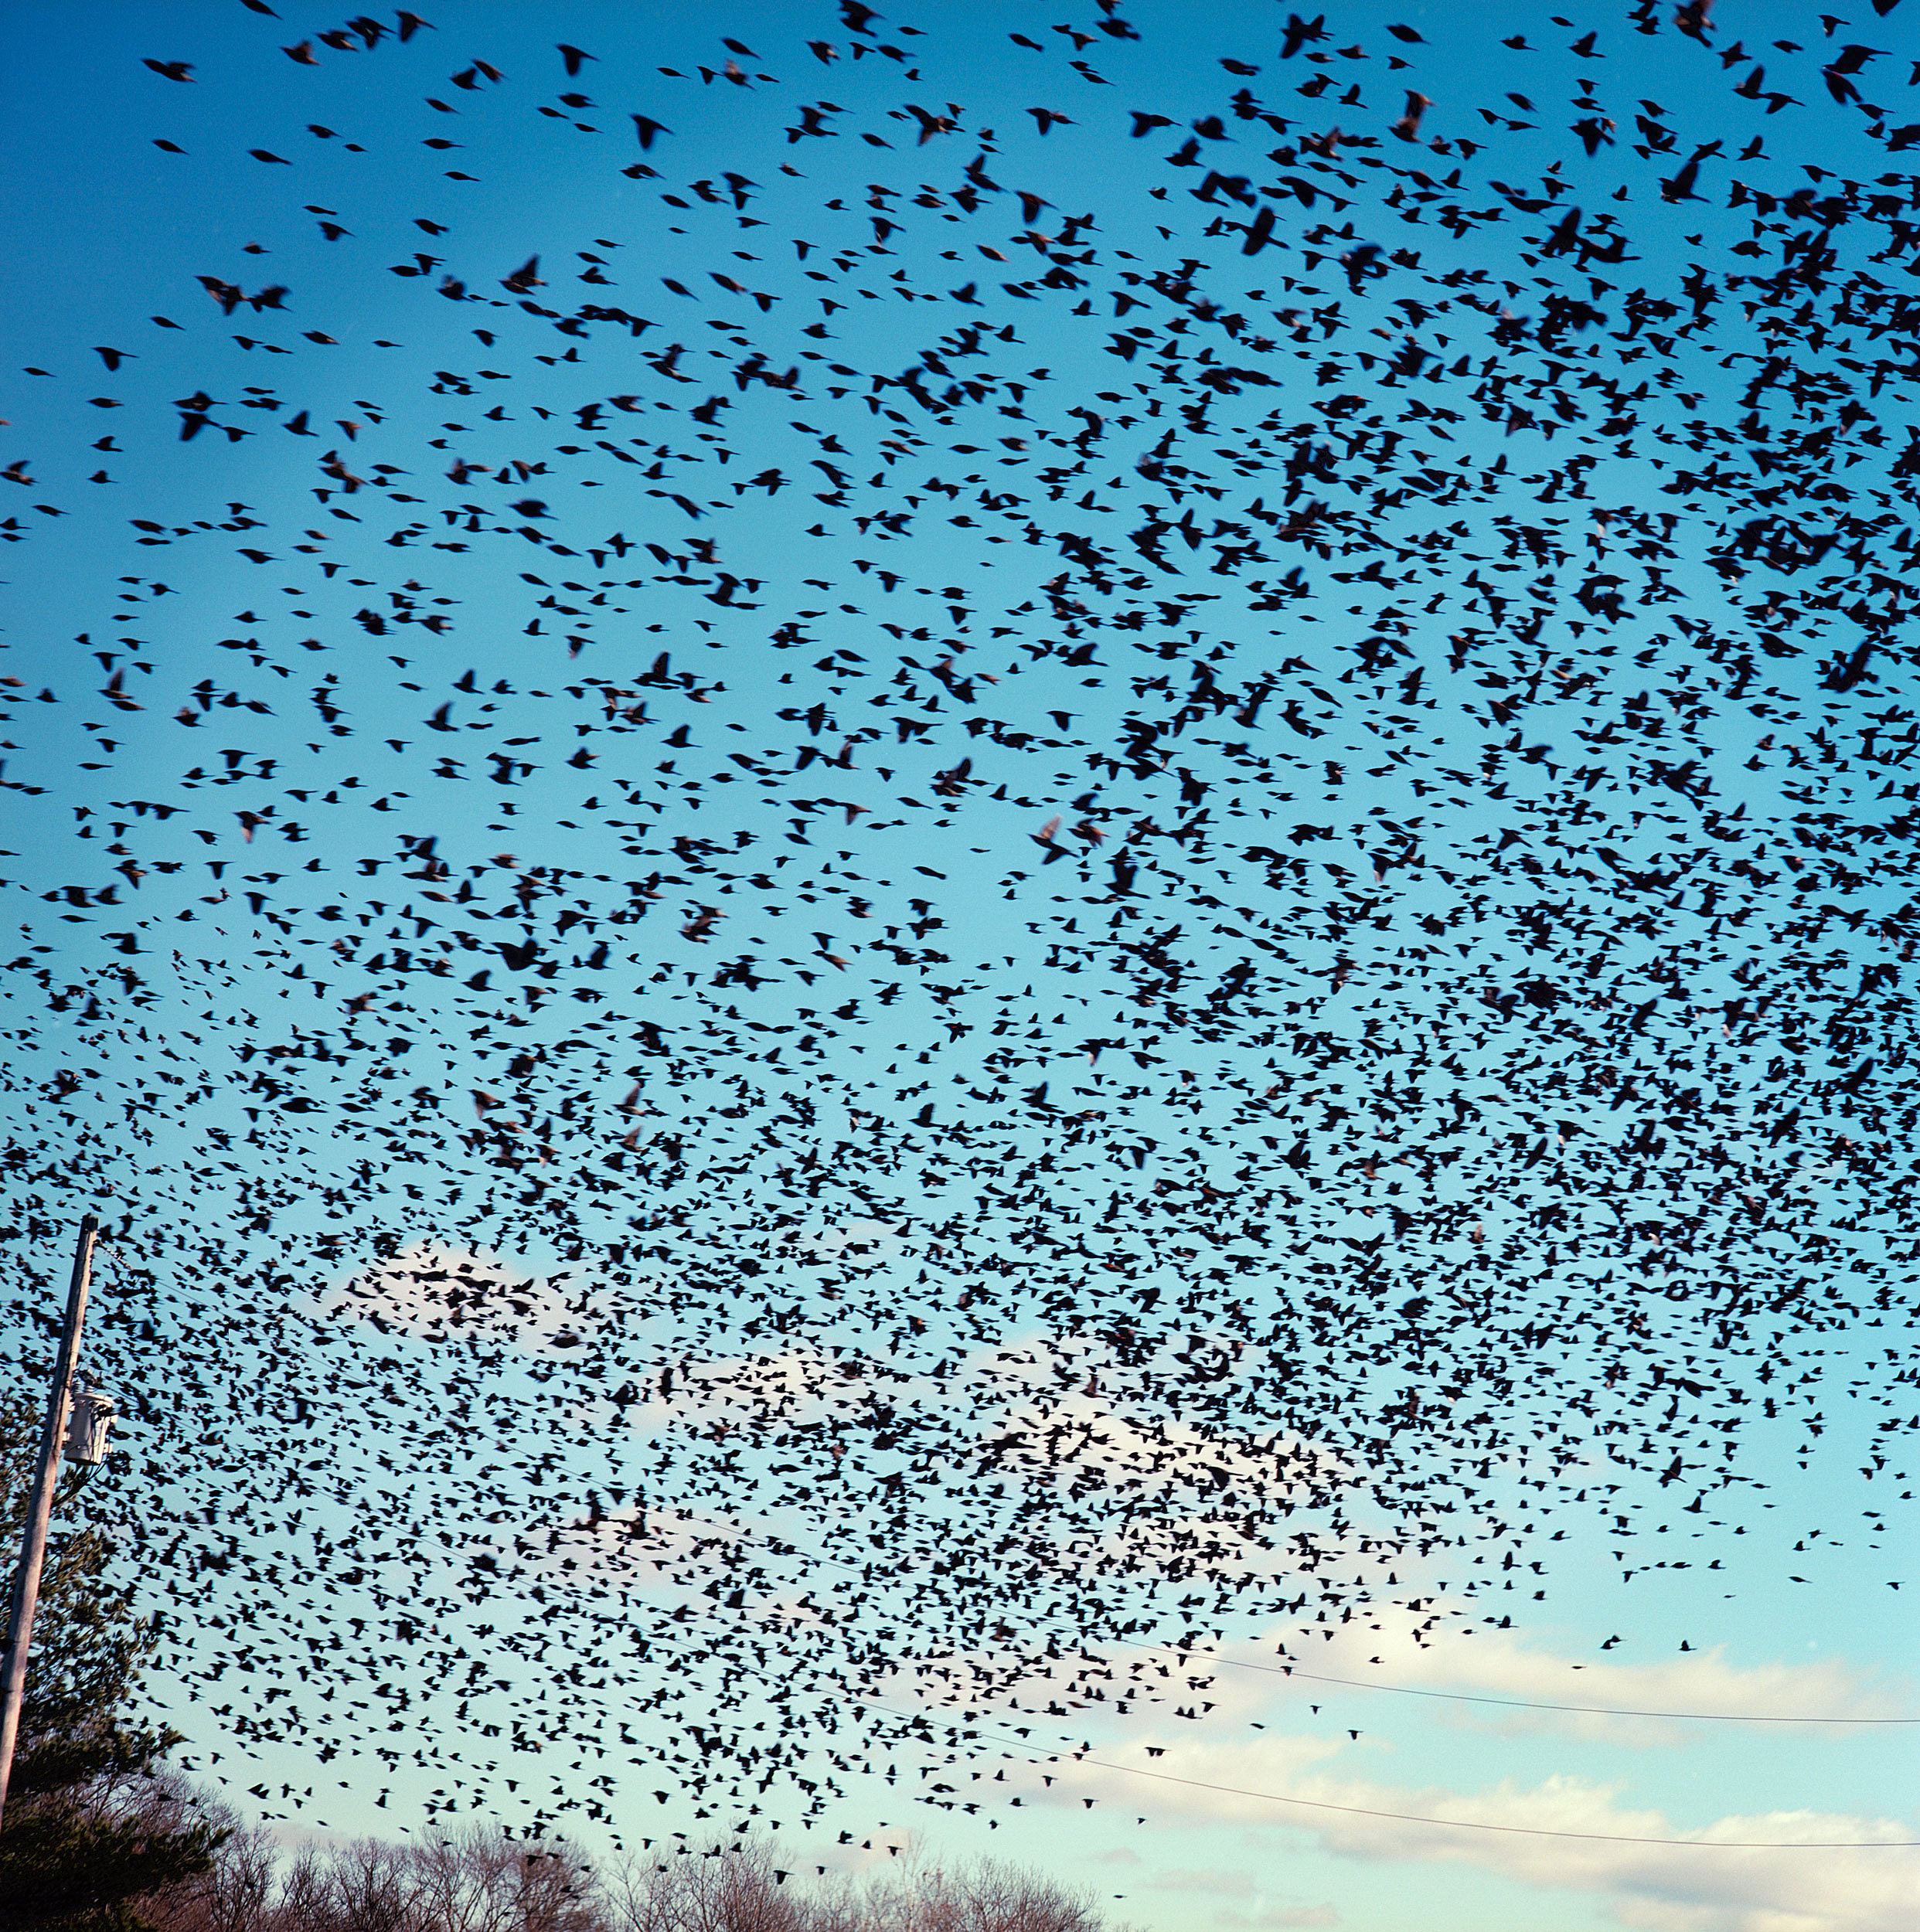 A murmuration of starlings near Odin, Illinois.